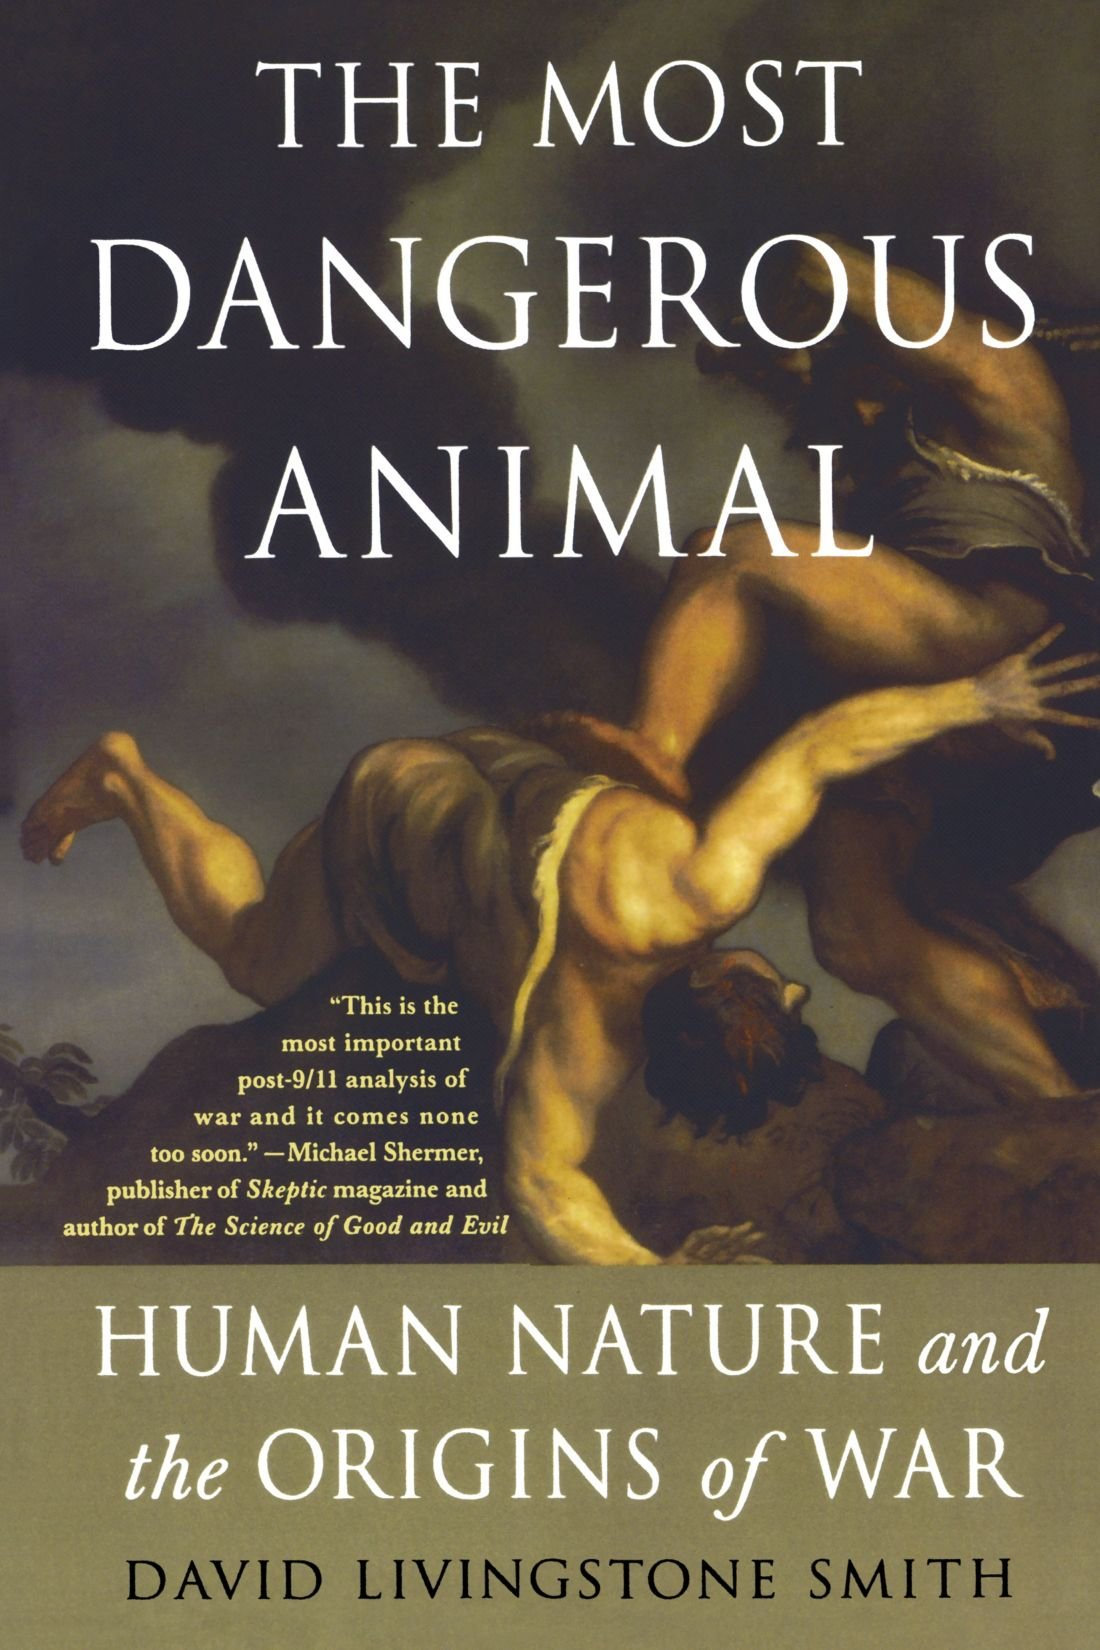 The Most Dangerous Animal - David Livingstone Smith